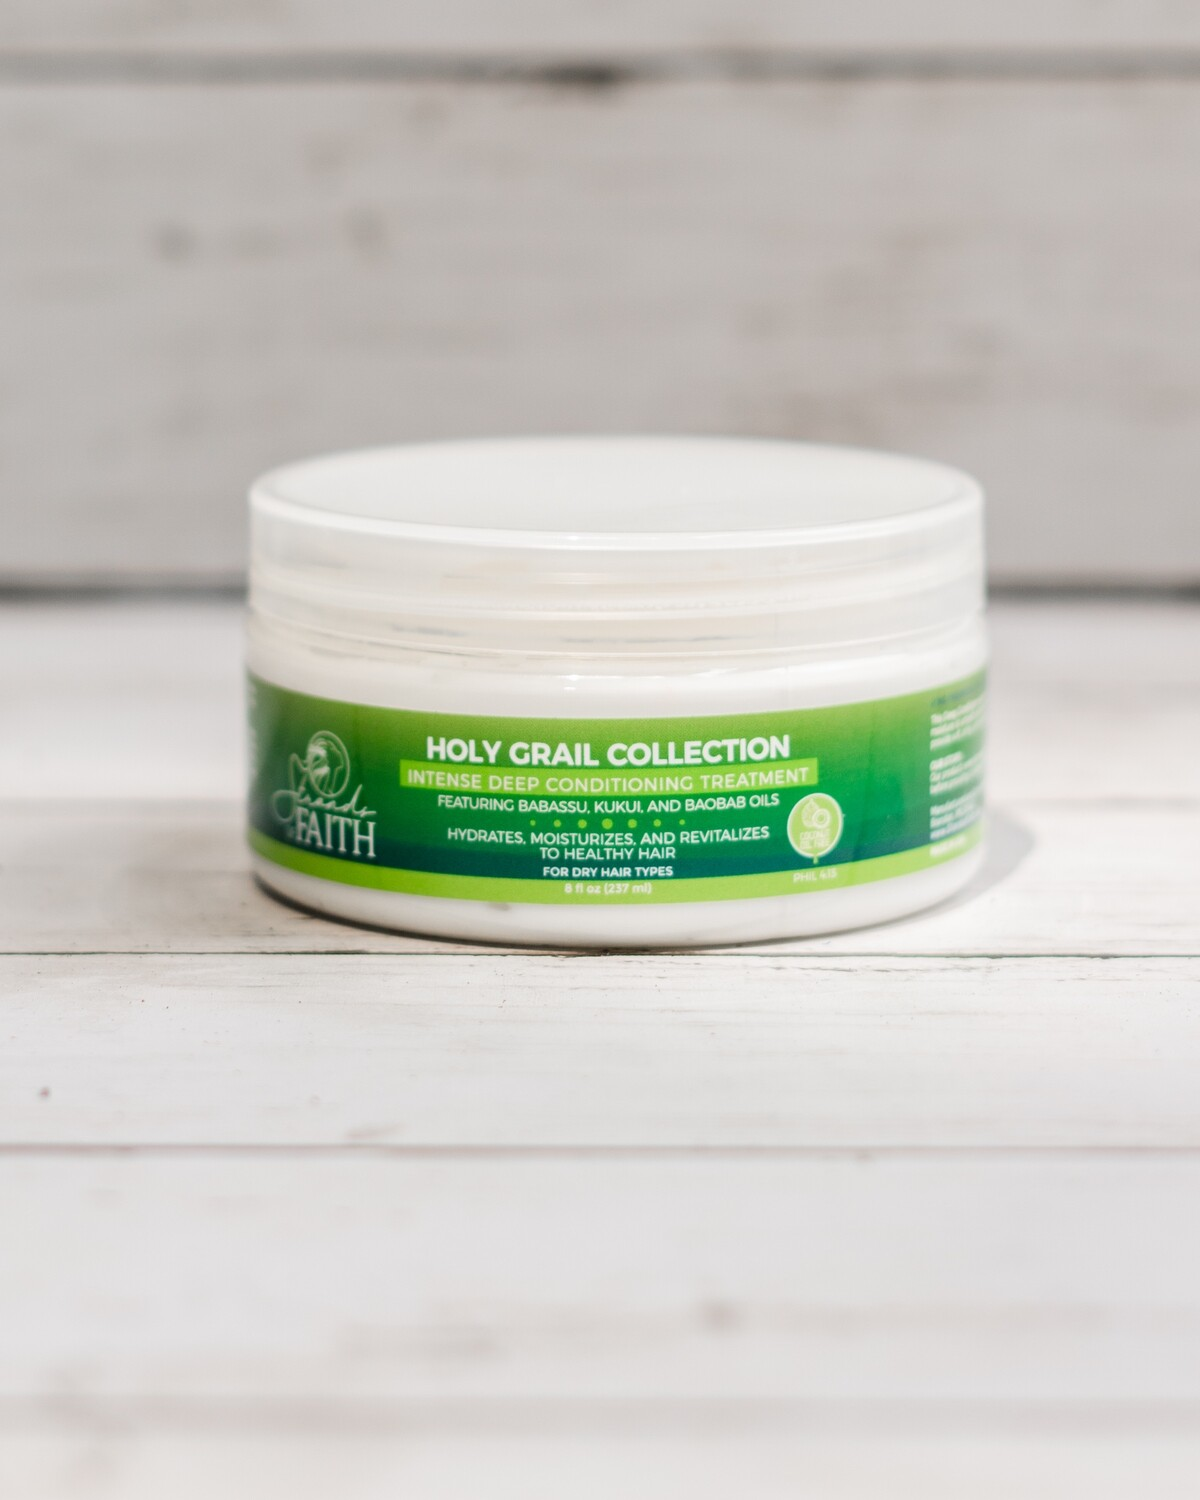 Strands of Faith - Intense Deep Conditioning Treatment